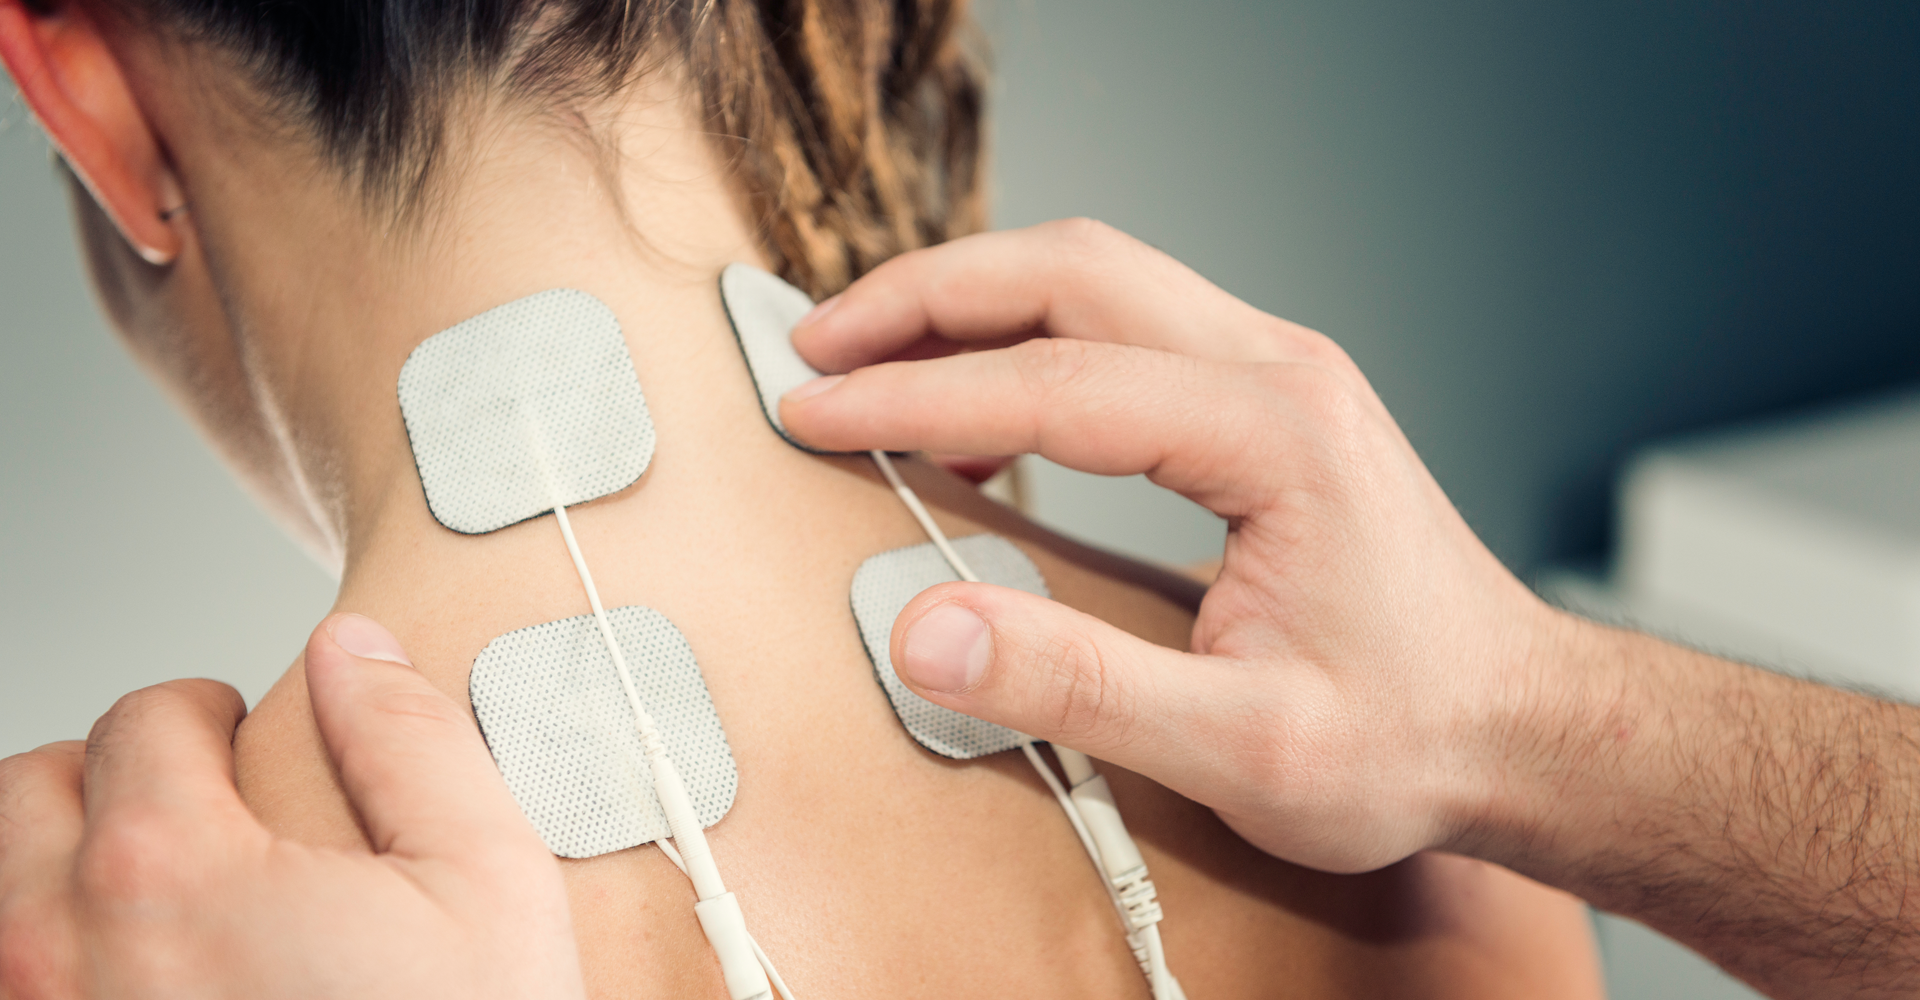 Patient receiving Transcutaneous Electrical Stimulation